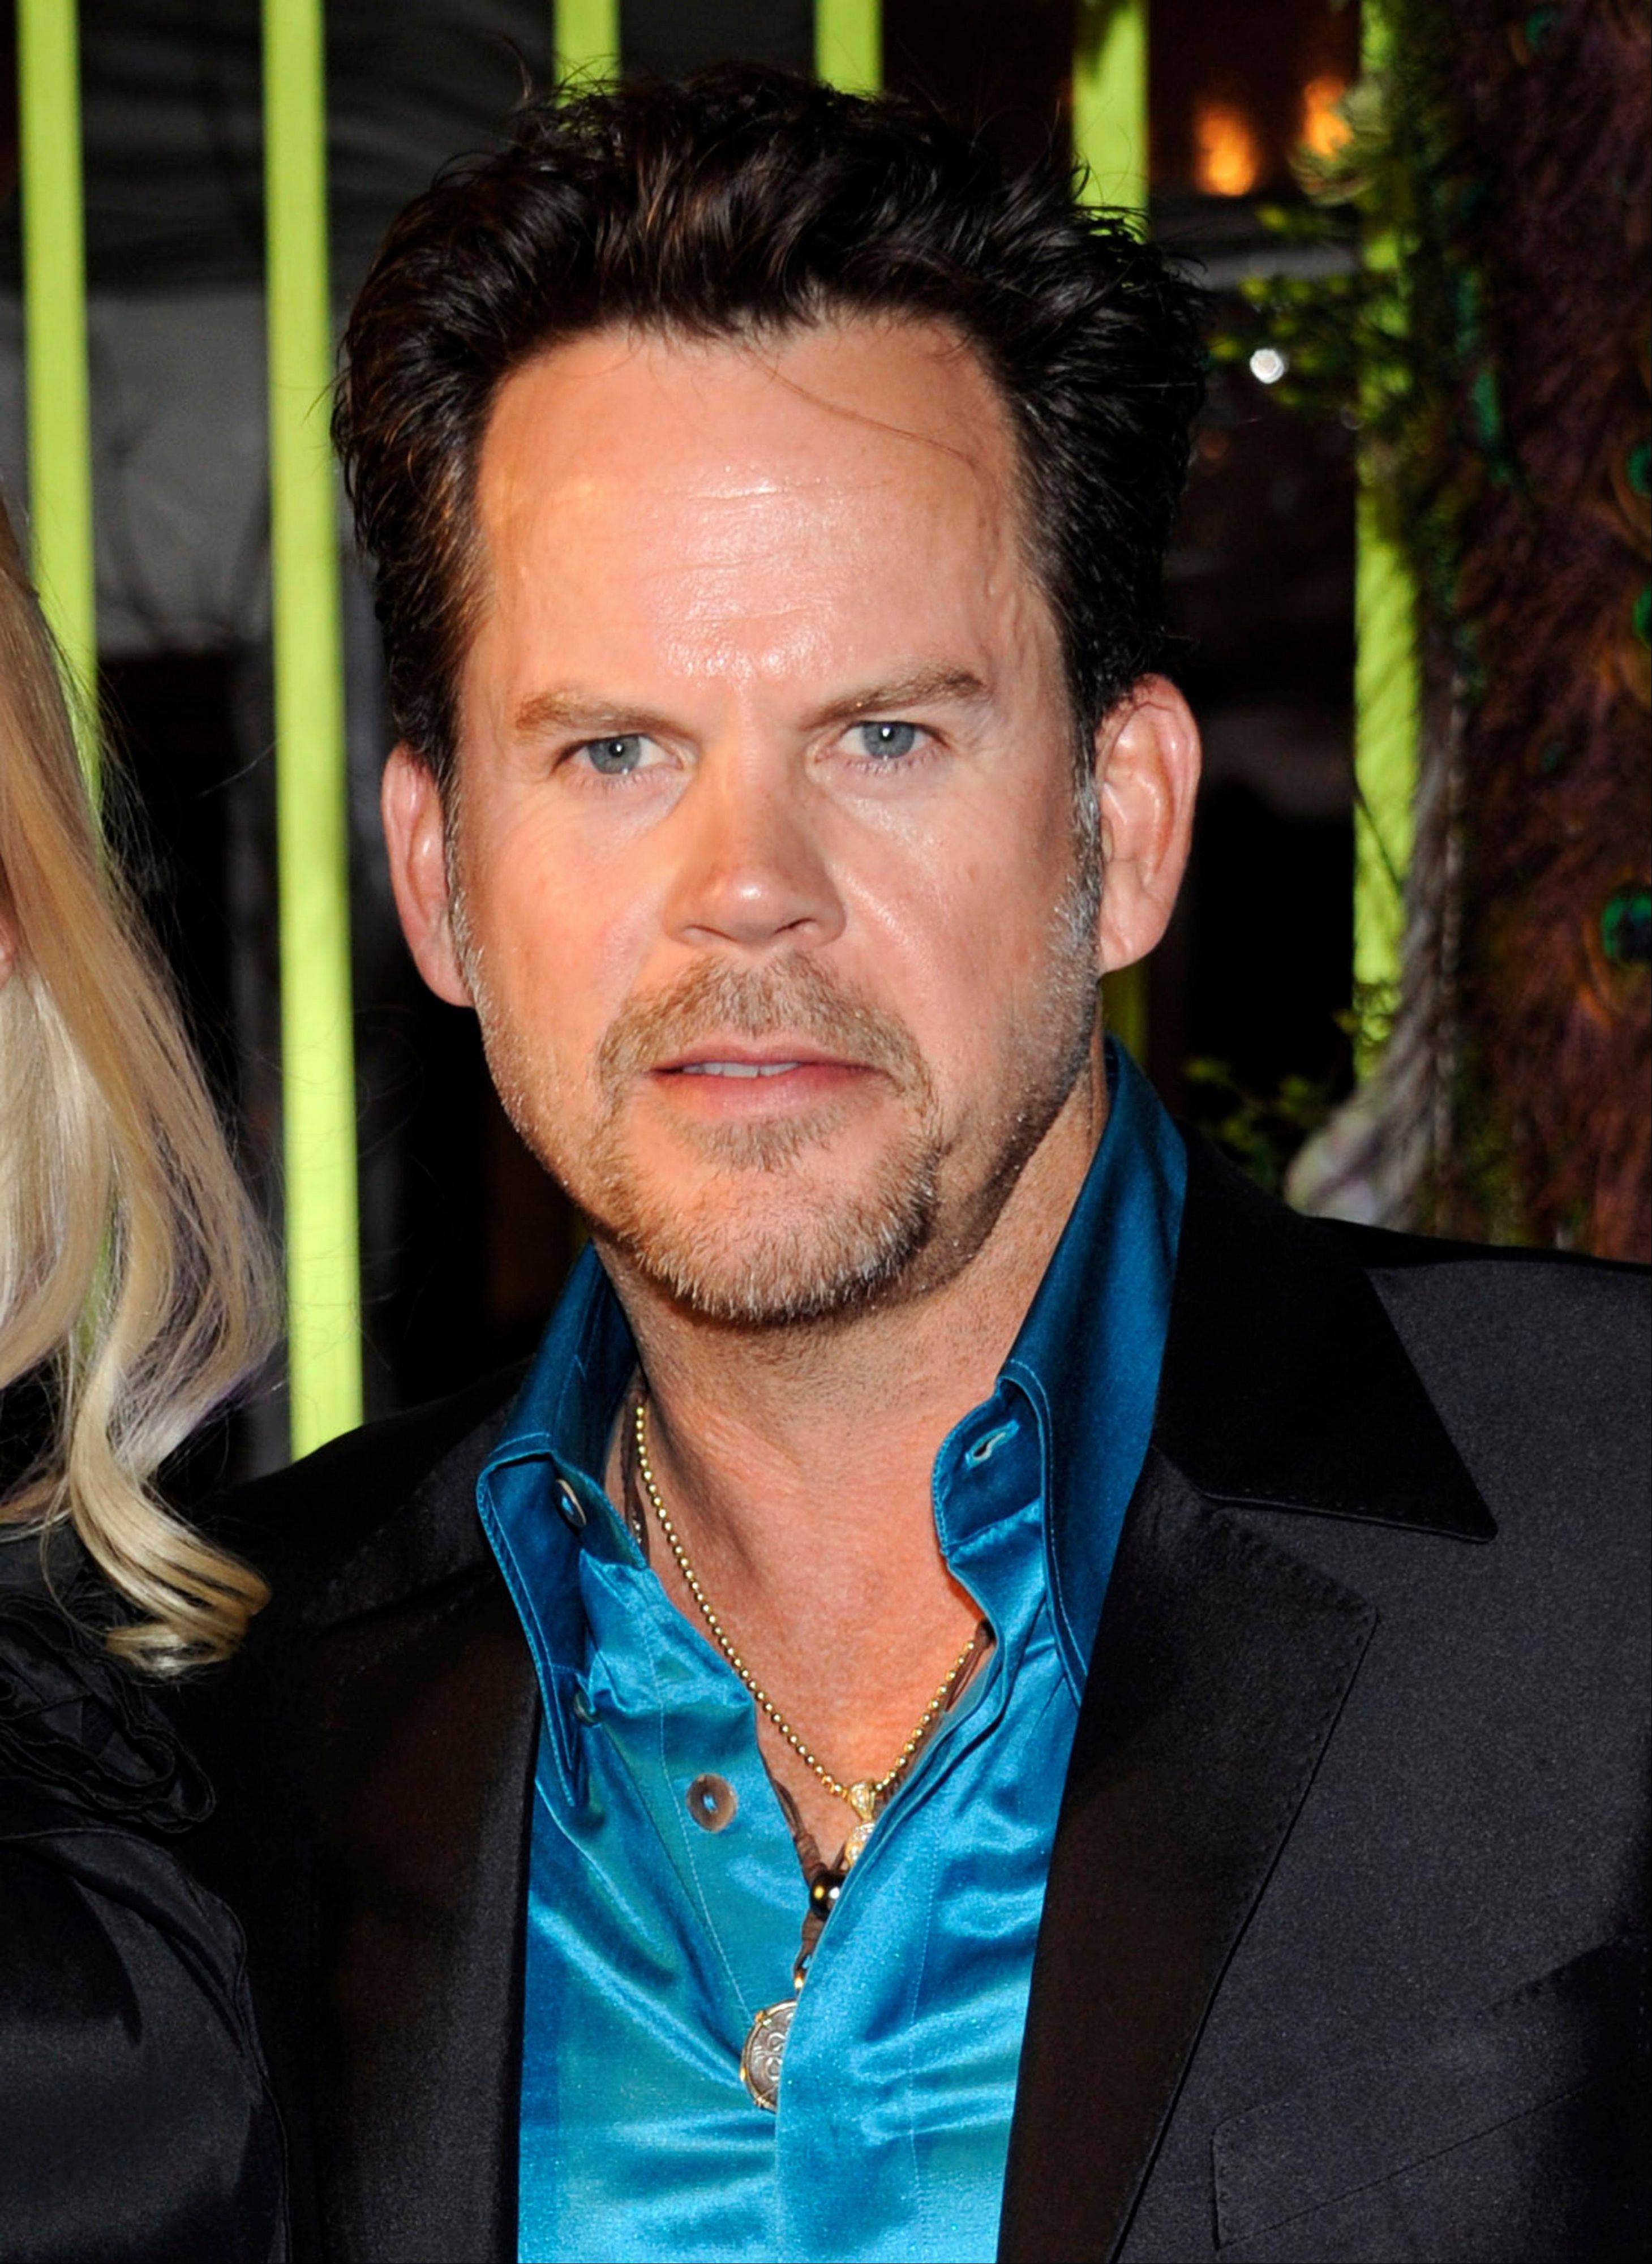 Country singer Gary Allan will play the Illinois State Fair on Aug. 16.